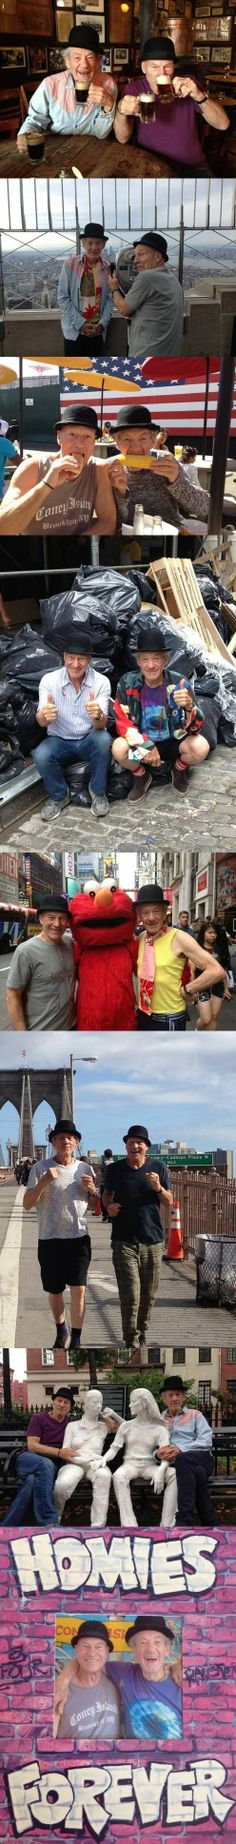 Patrick Stewart and Ian McKellen. Best buds and hip-hoppin' homies.